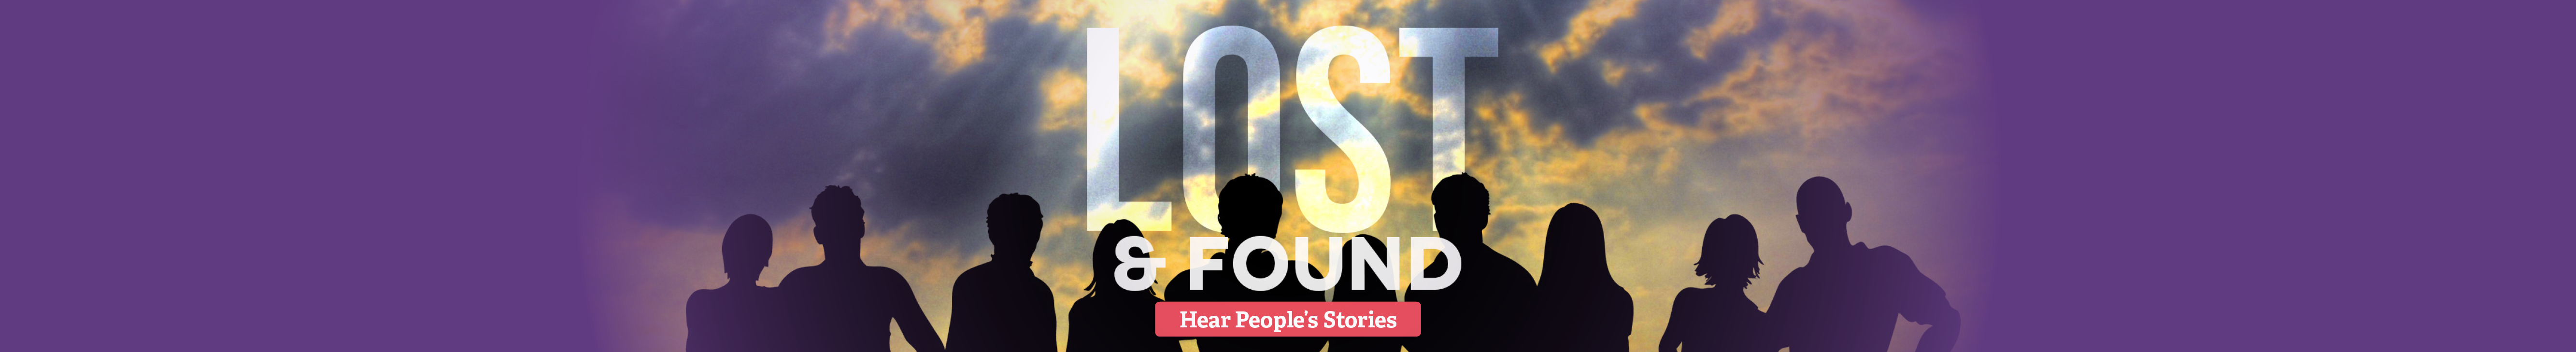 New Springs Church Loughborough - Lost and Found